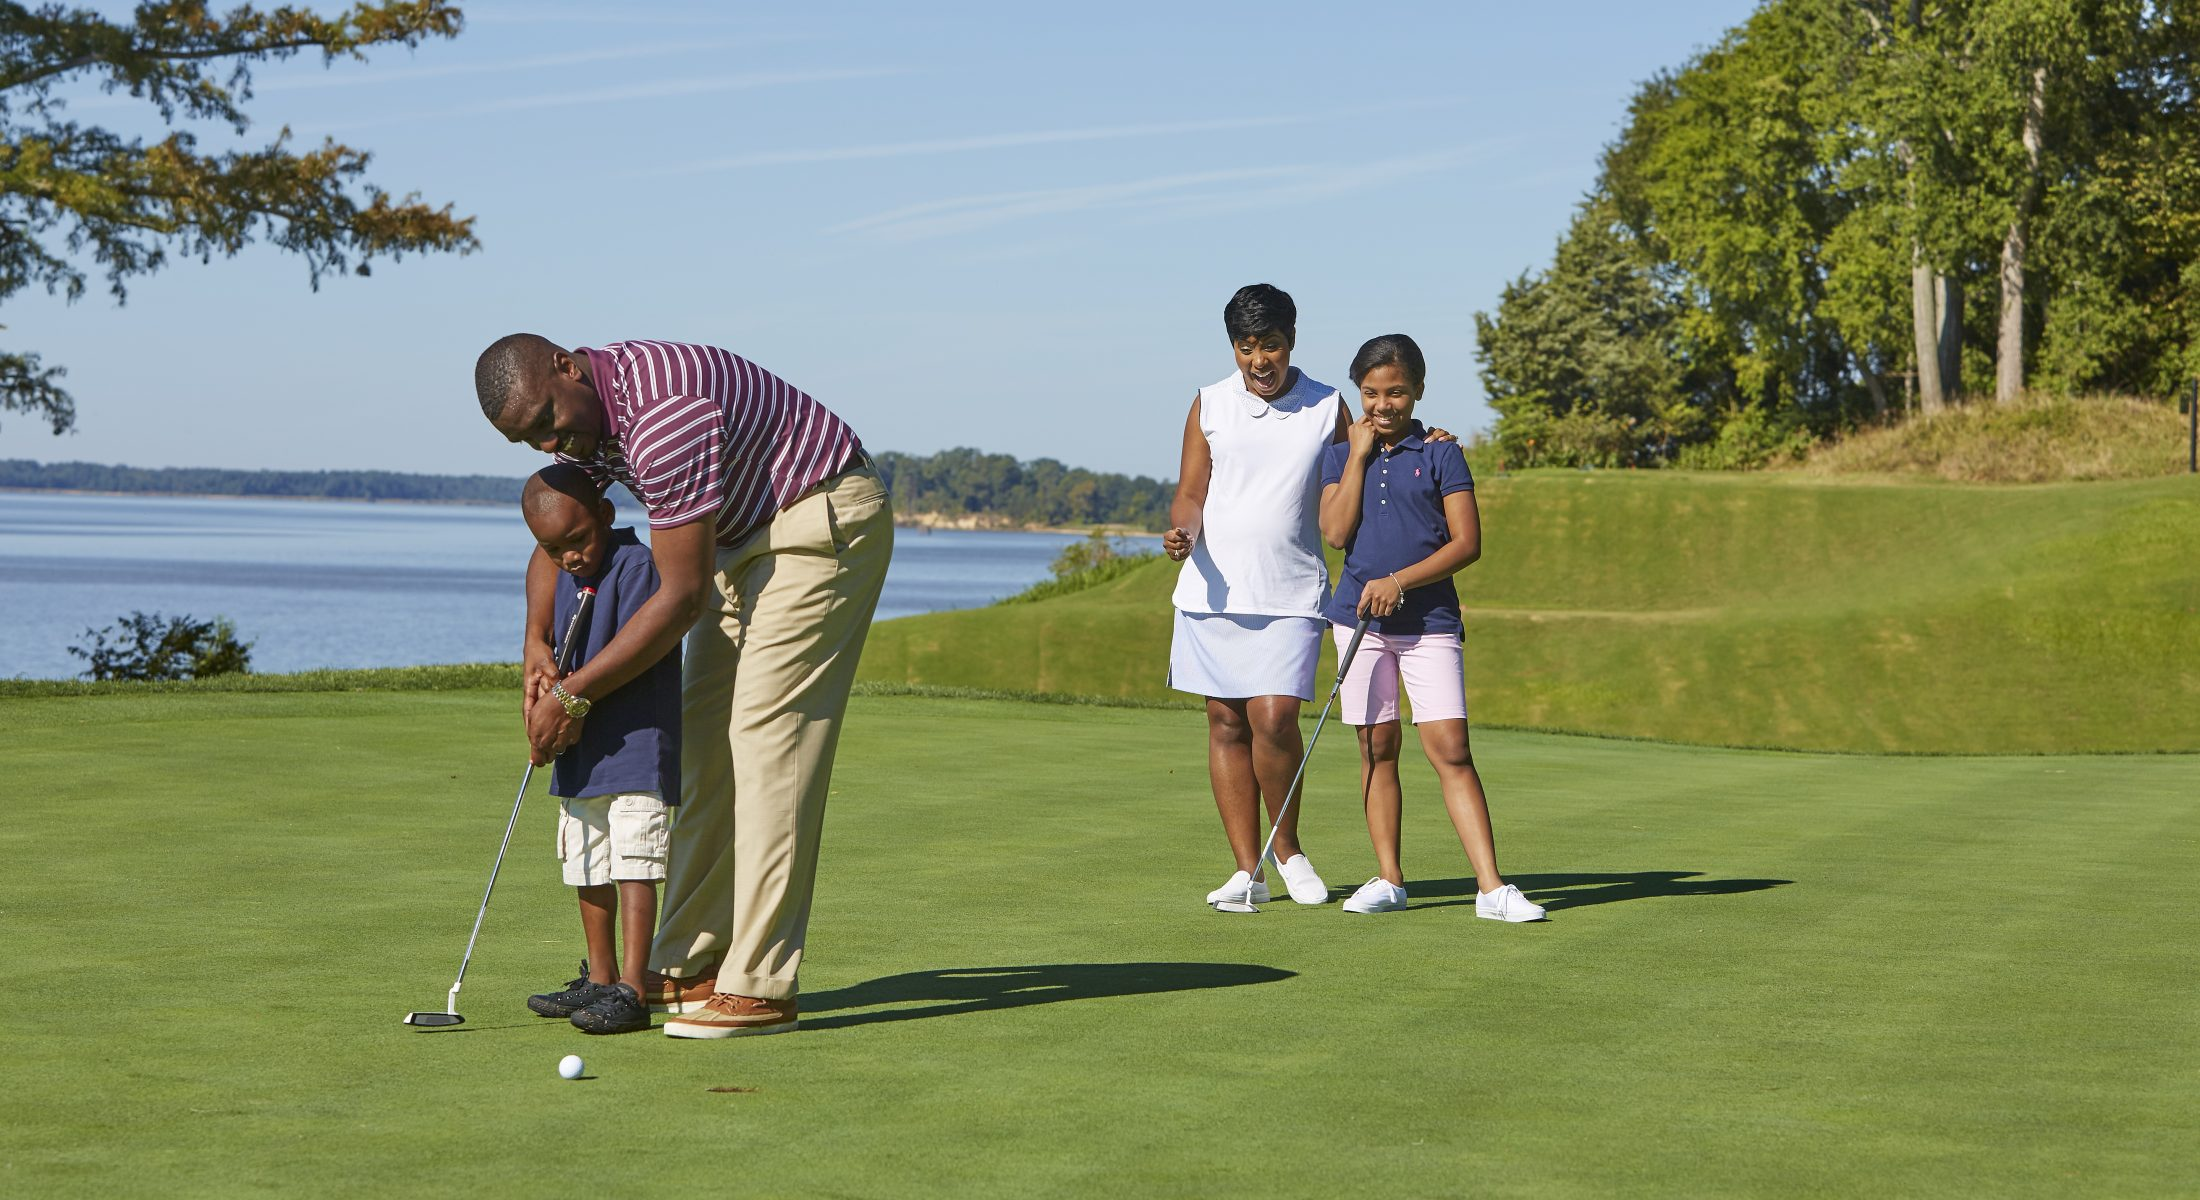 Father Teaching Son to Golf With Mother and Daughter Watching